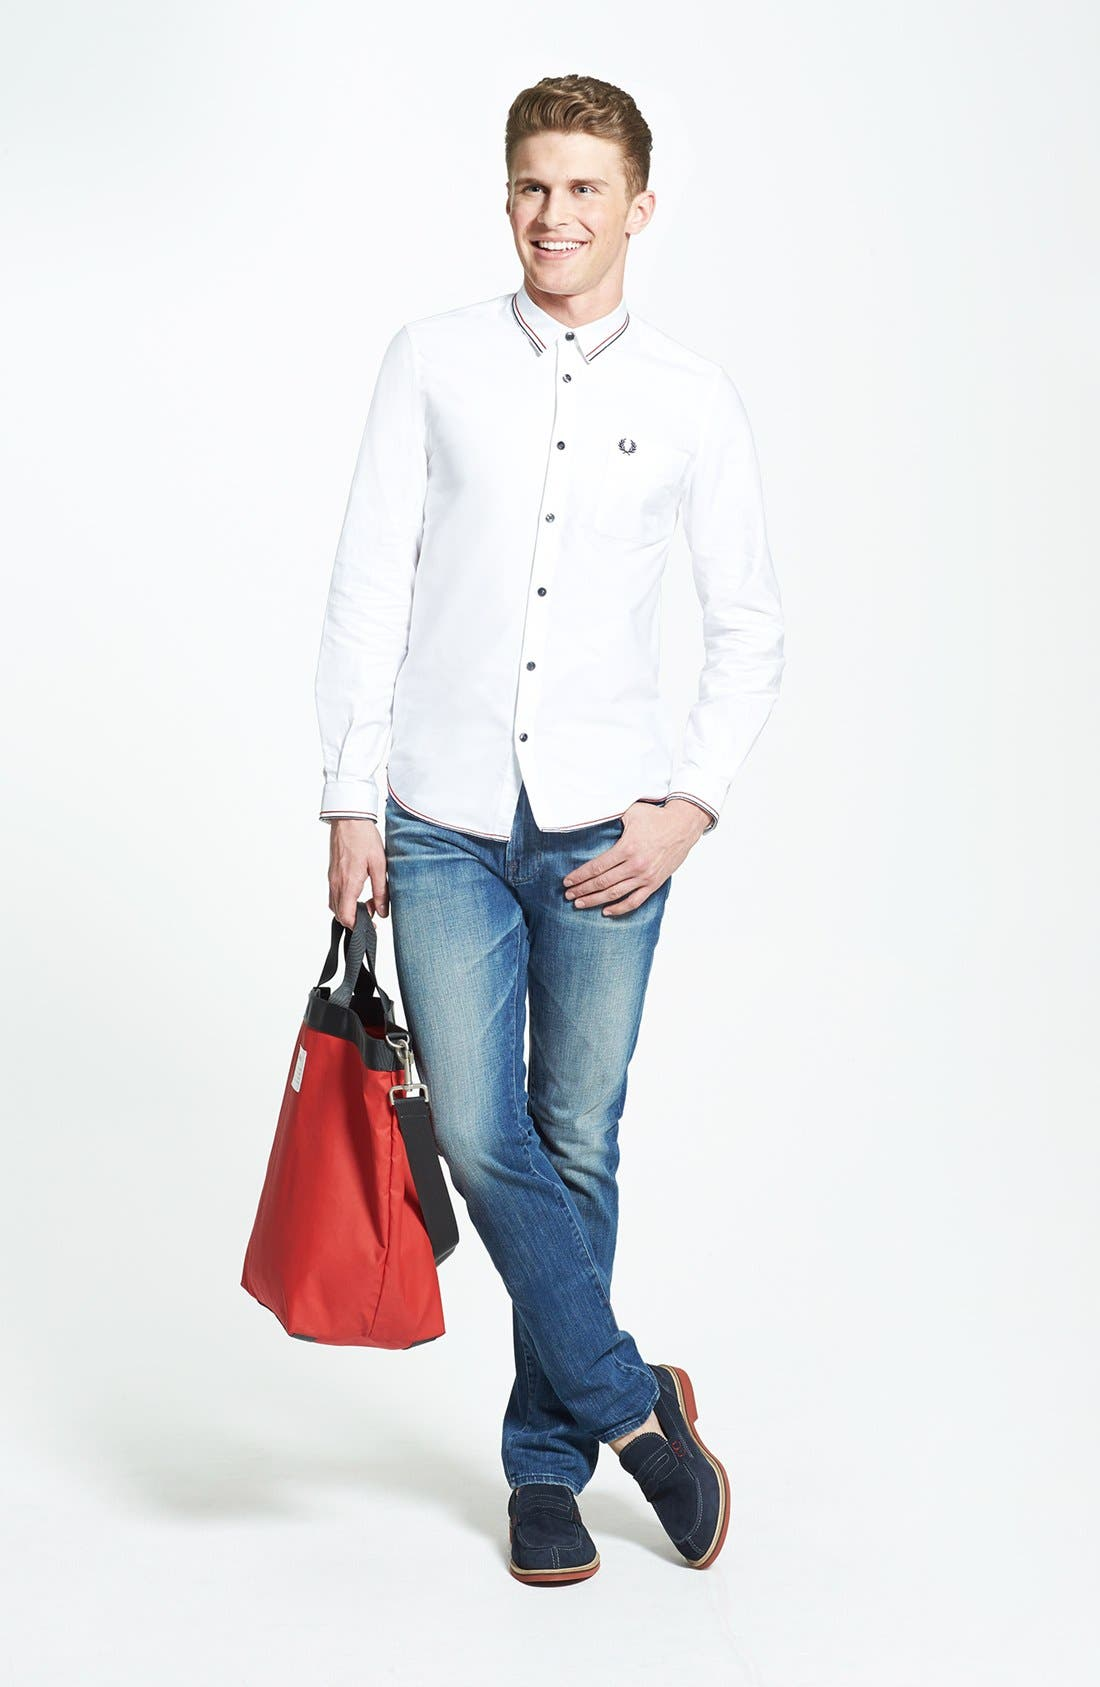 Main Image - Fred Perry Tipped Oxford Sport Shirt & Hudson Jeans Straight Leg Jeans